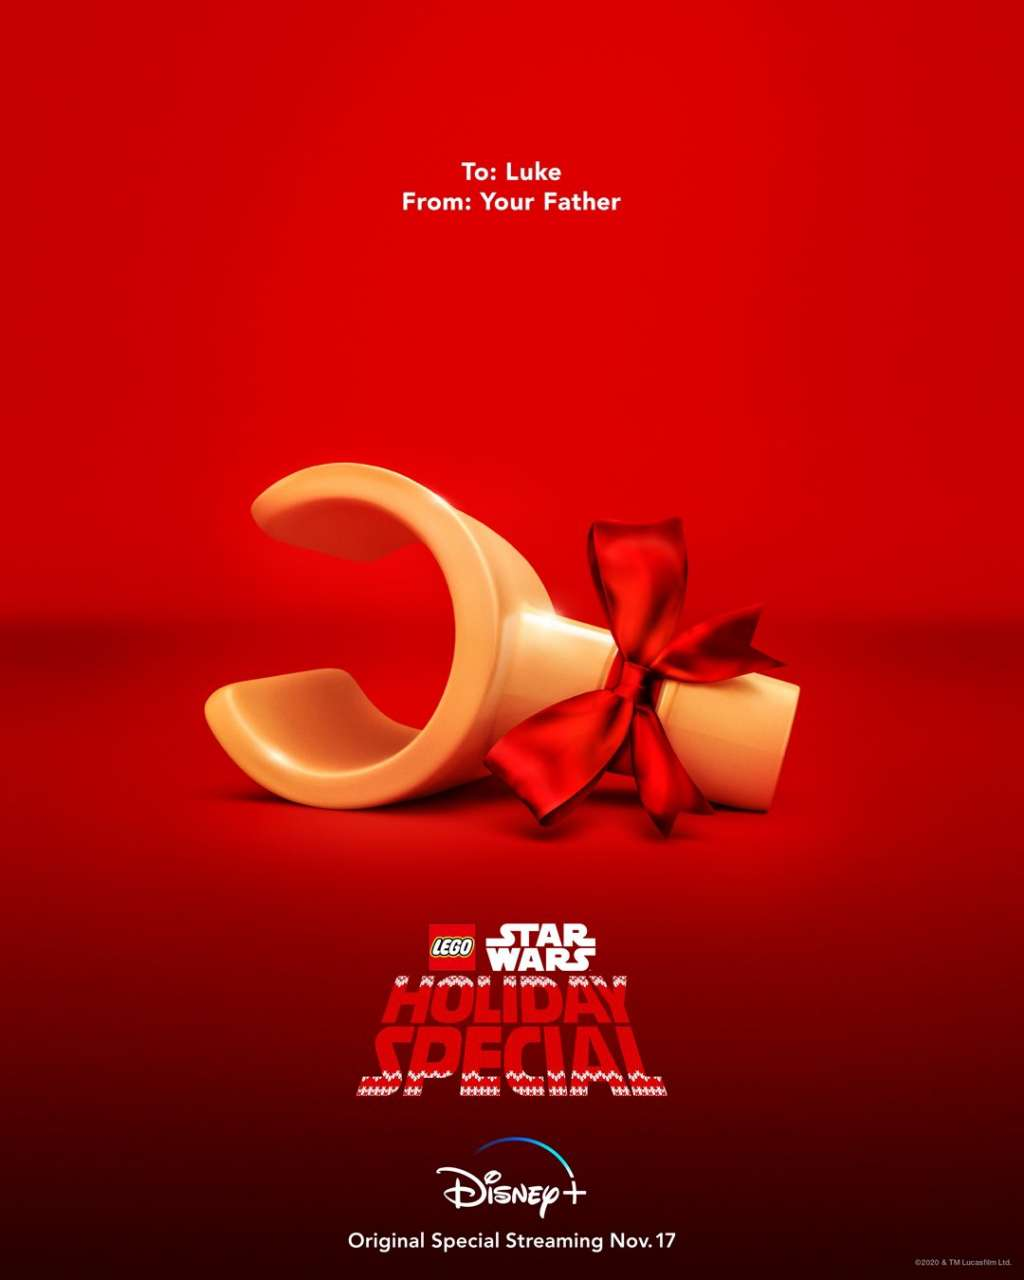 The Lego Star Wars Holiday Special kapak